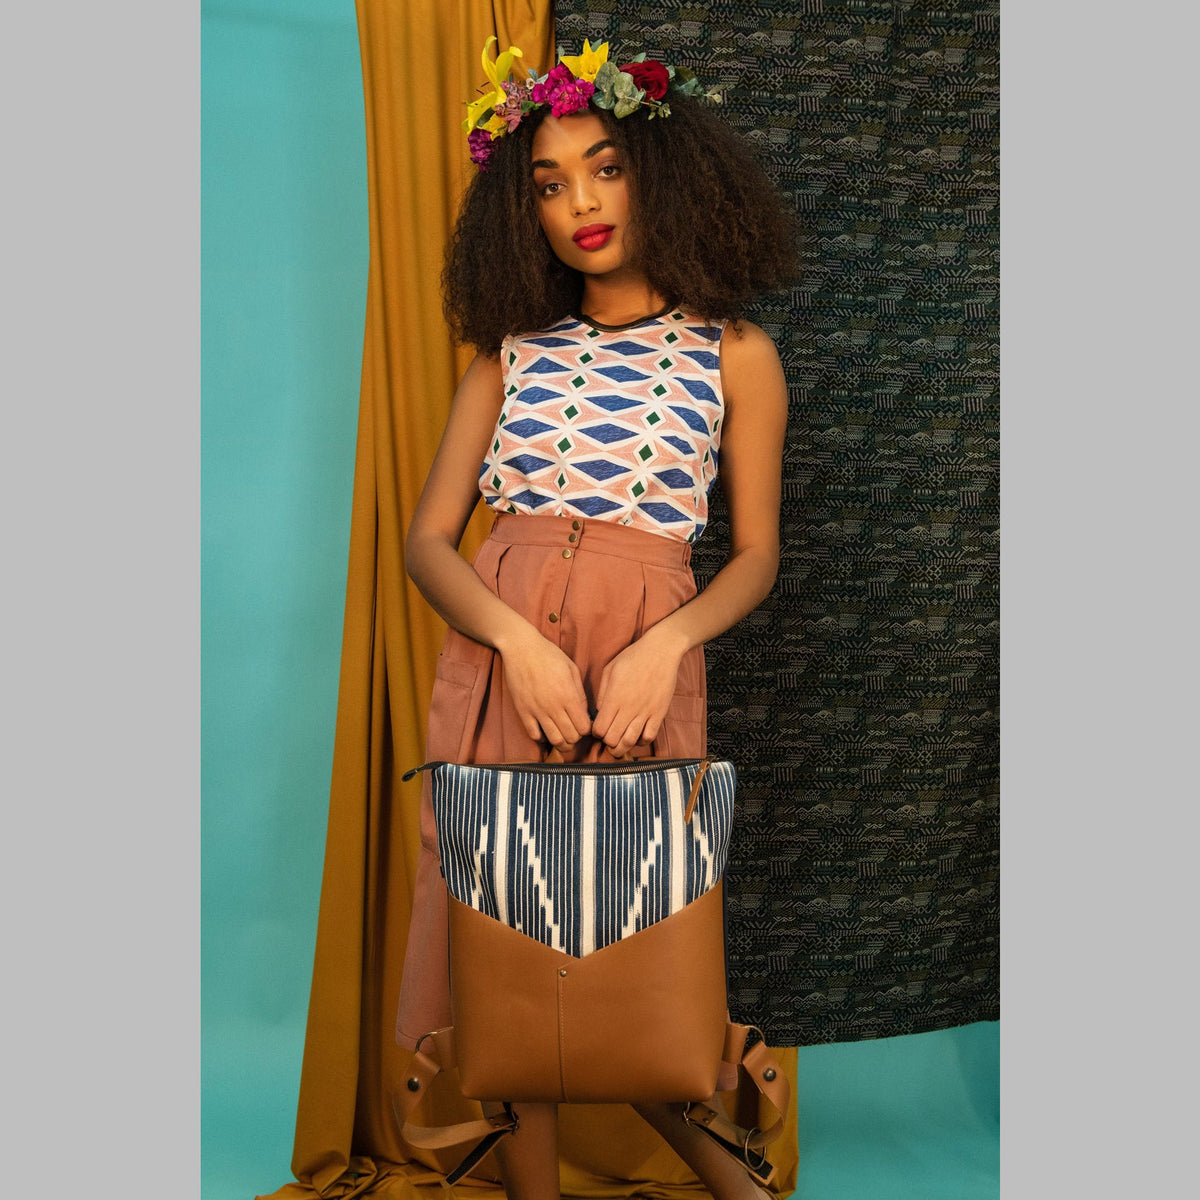 Model Wearing a Handcrafted 13 Inch Laptop Backpack in Leather &  Ivorian Indigo Fabric - Sold by Chic & Basta